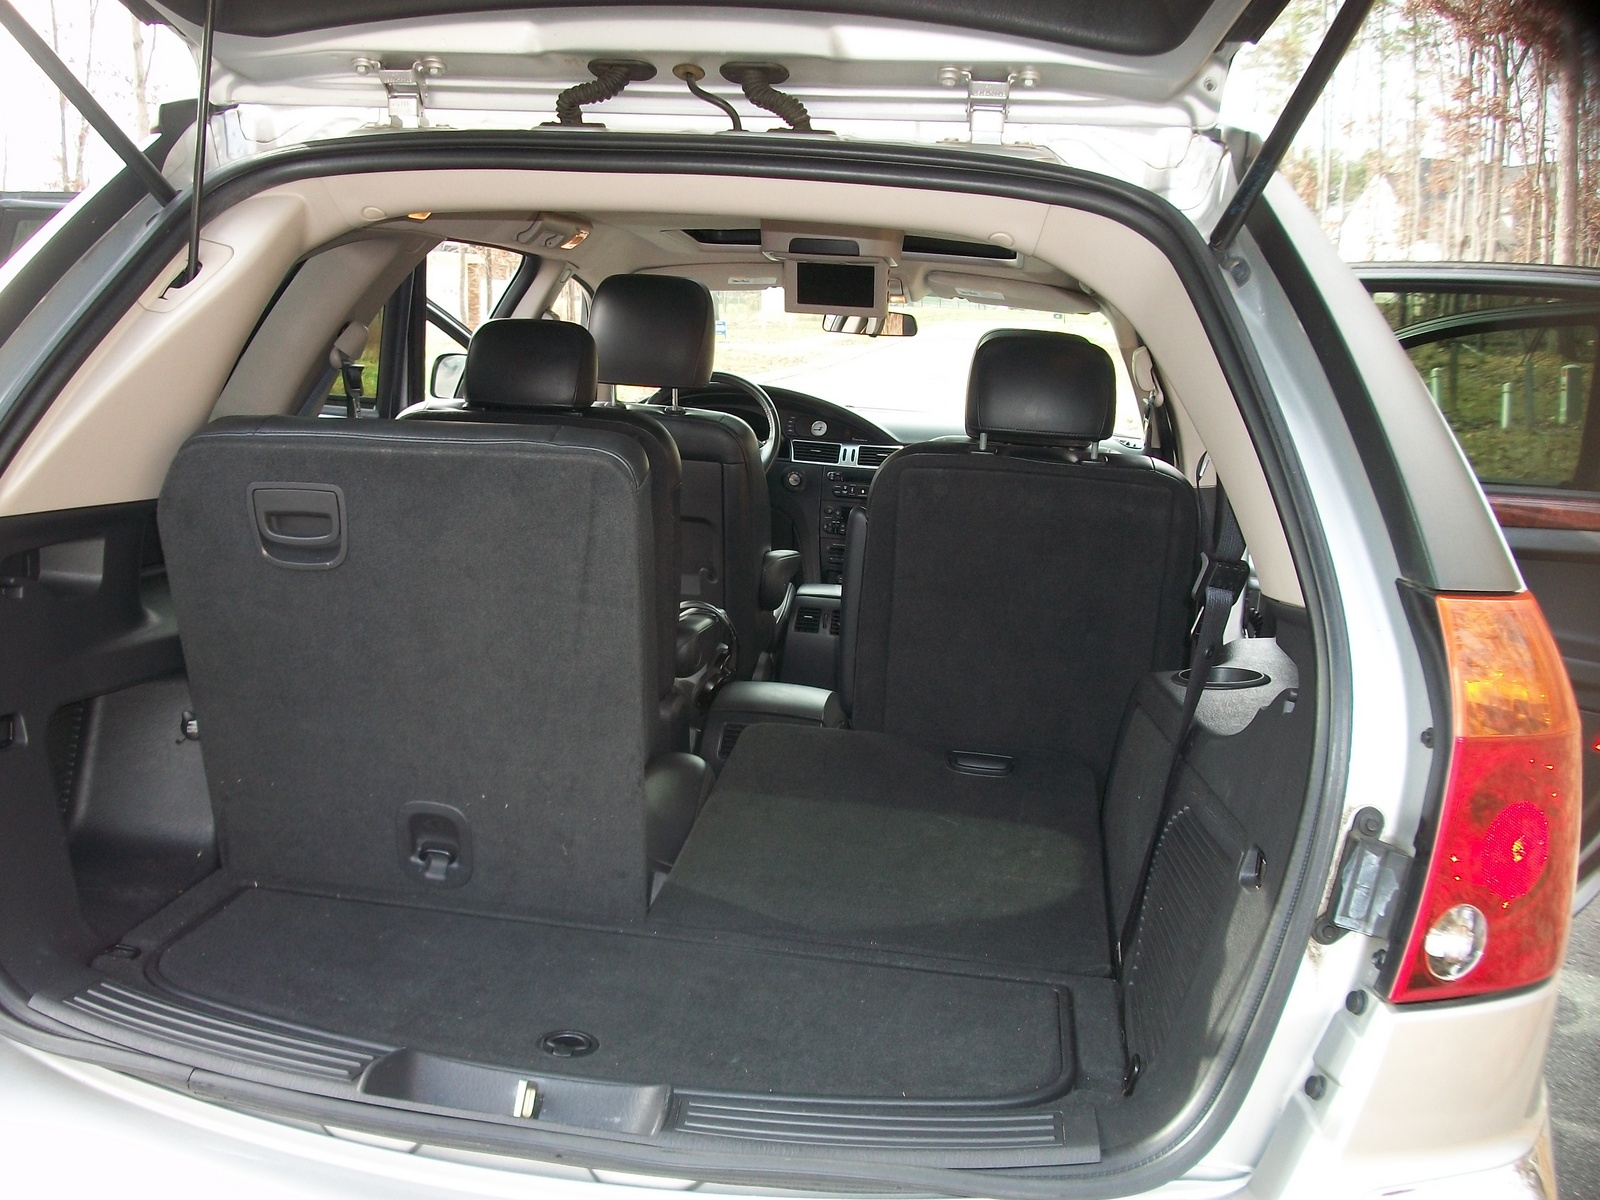 Ford Dealers Near Me 2006 Chrysler Pacifica - Interior Pictures - CarGurus